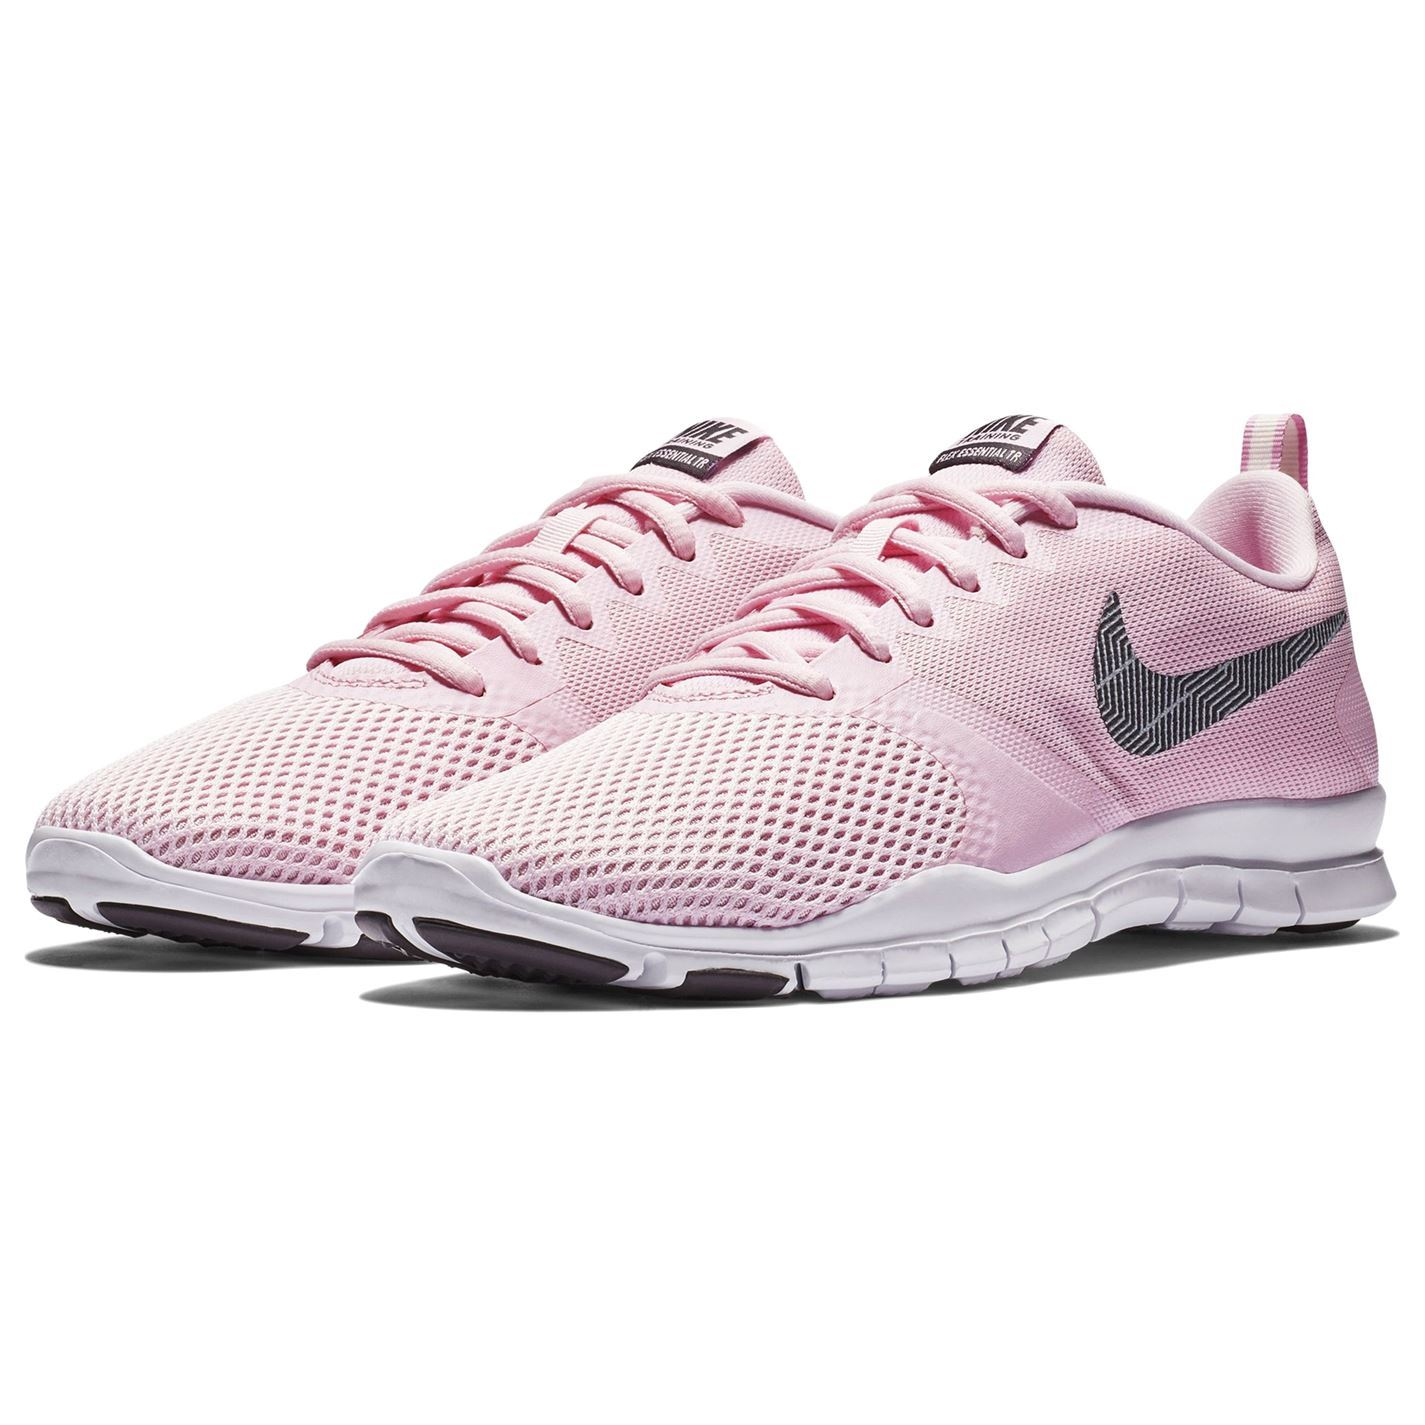 Details about Nike Flex Essential Training Shoes Womens Fitness Gym Workout Trainers Sneakers